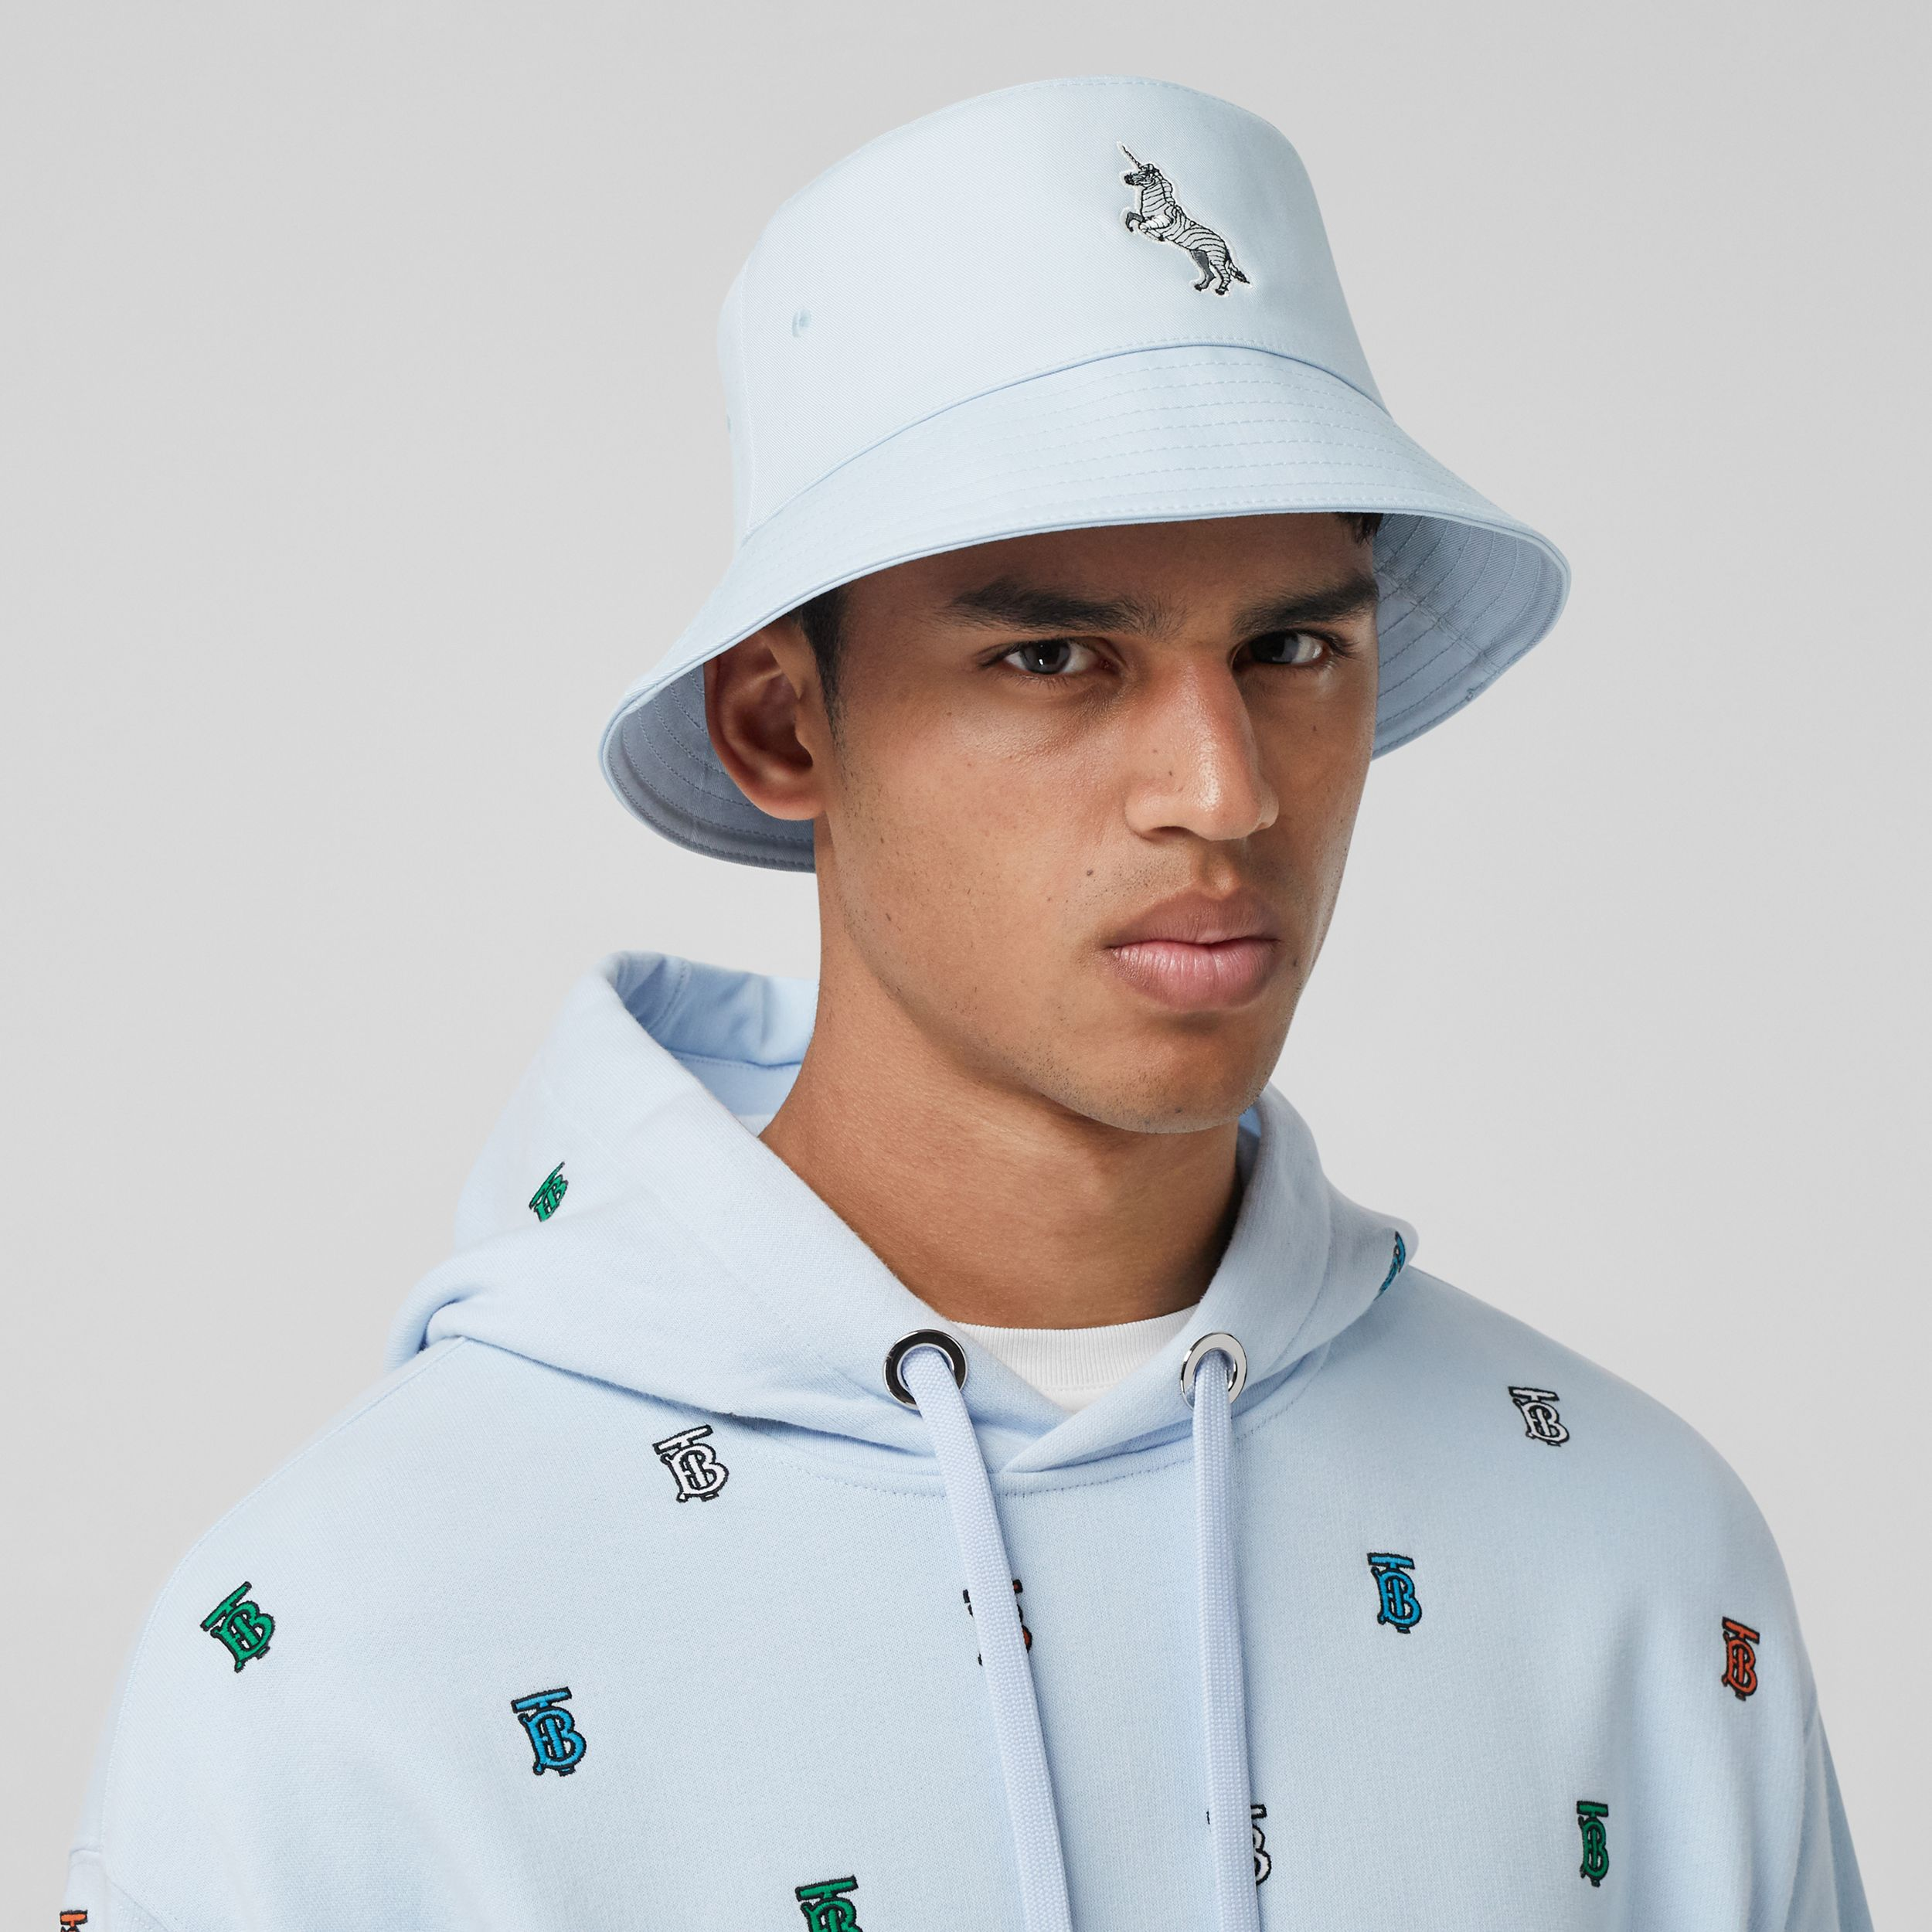 Zebra Appliqué Cotton Twill Bucket Hat in Pale Blue | Burberry Australia - 4